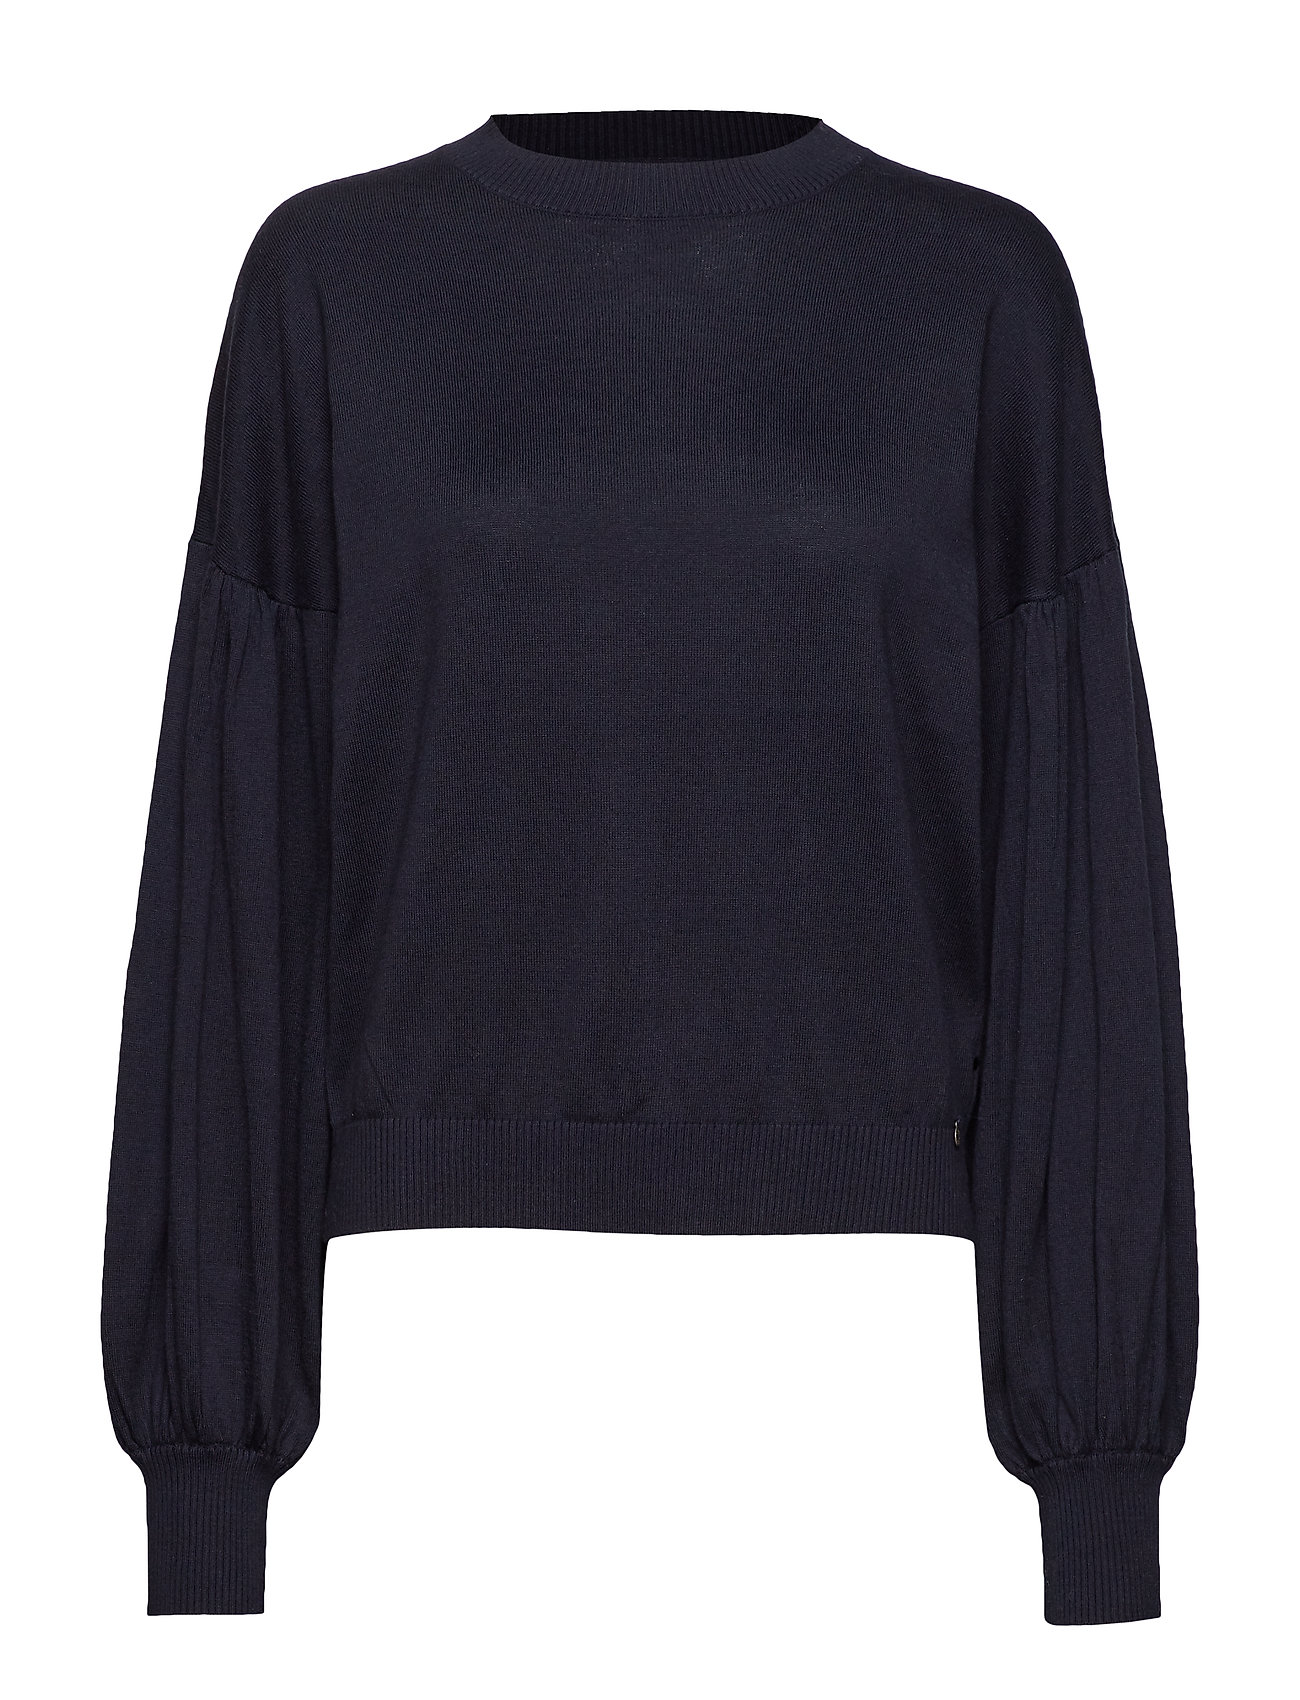 Twist & Tango Beatrice Sweater Blackish Blue - BLACKISH BLUE